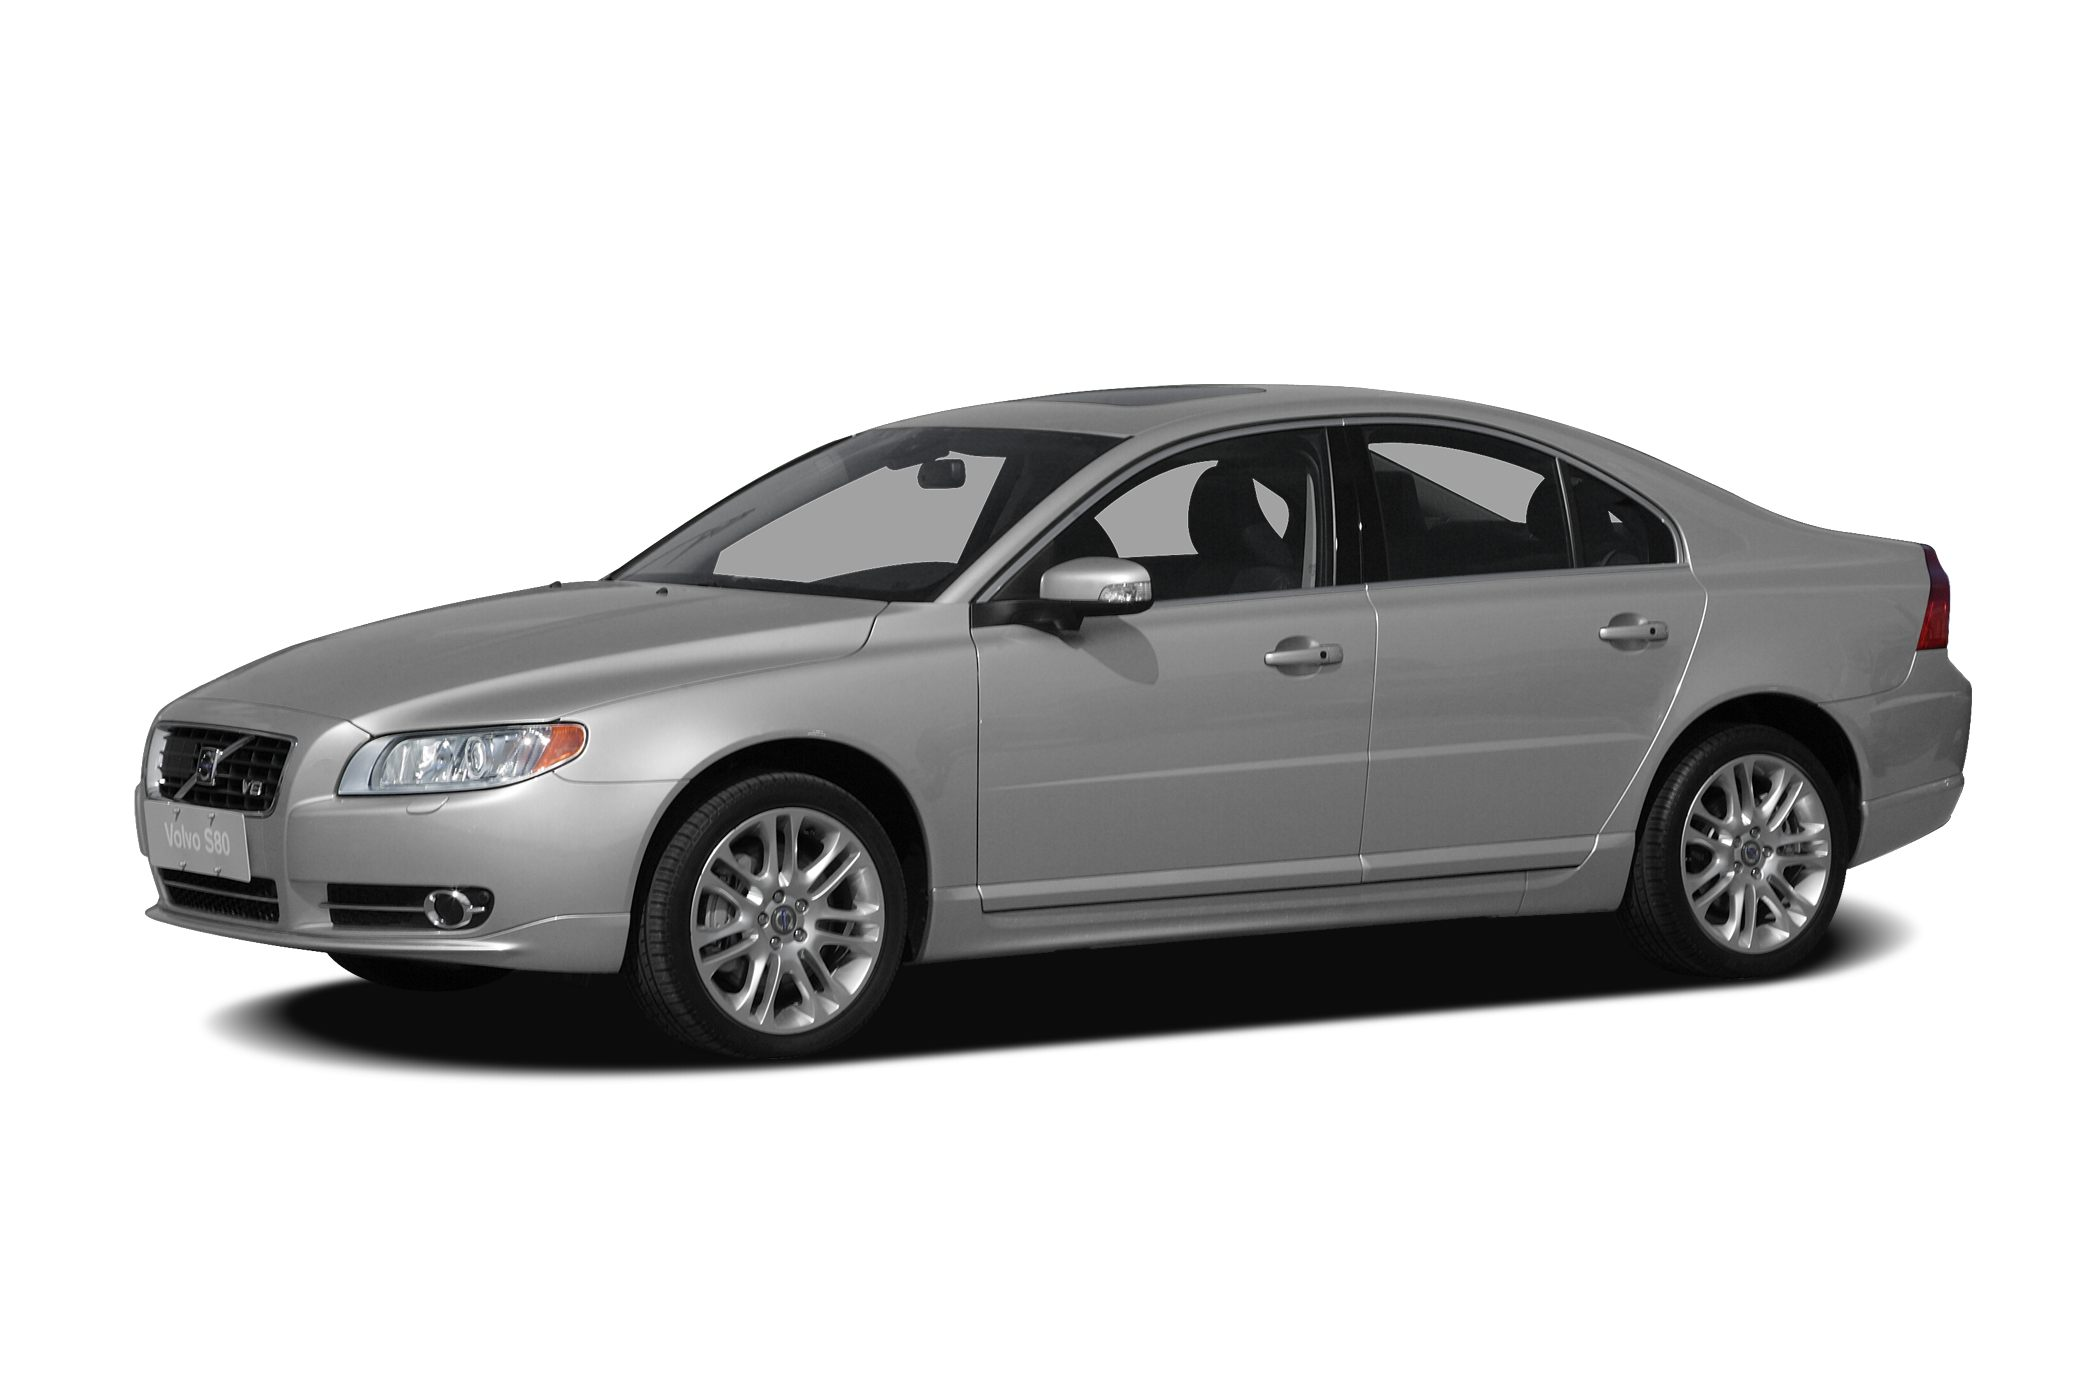 2008 Volvo S80 32 This 2008 Volvo S80 is immaculate and has been well maintained Brand new tires